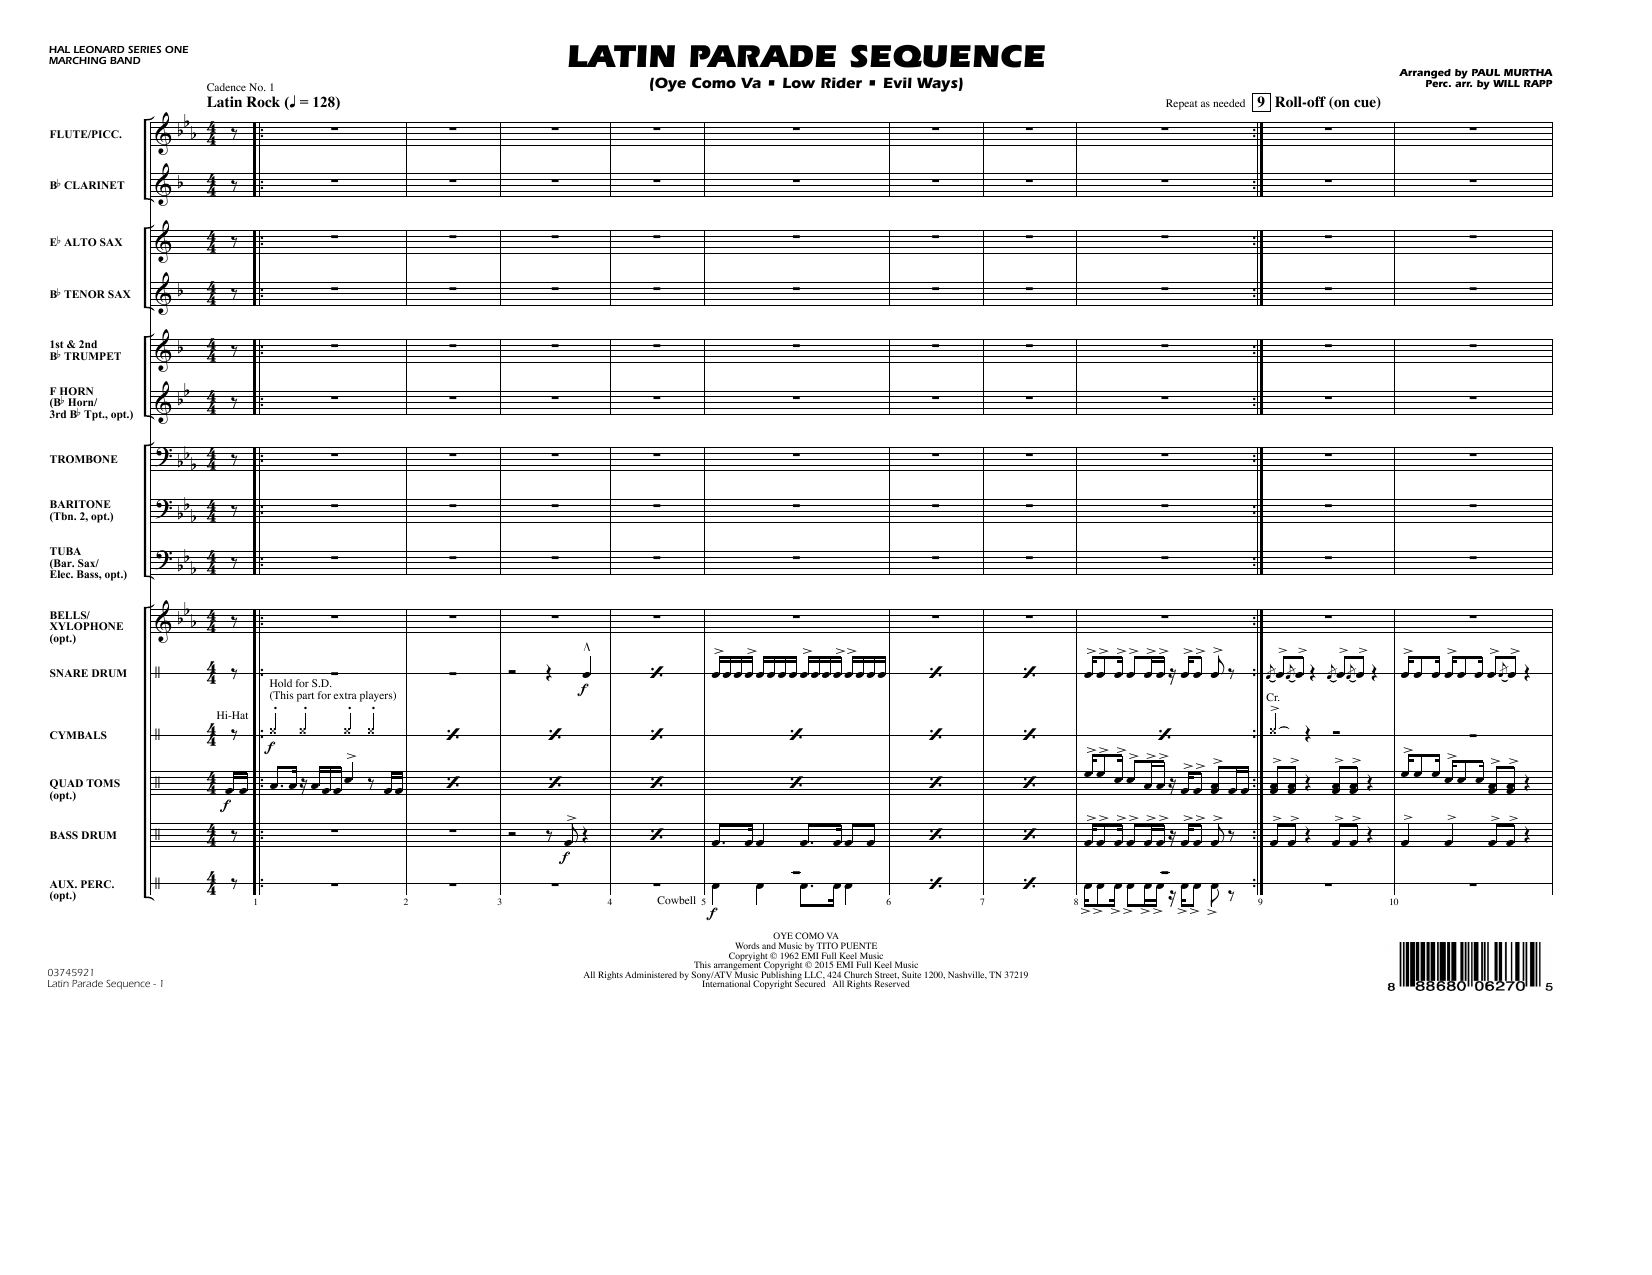 Latin Parade Sequence (COMPLETE) sheet music for marching band by Paul Murtha